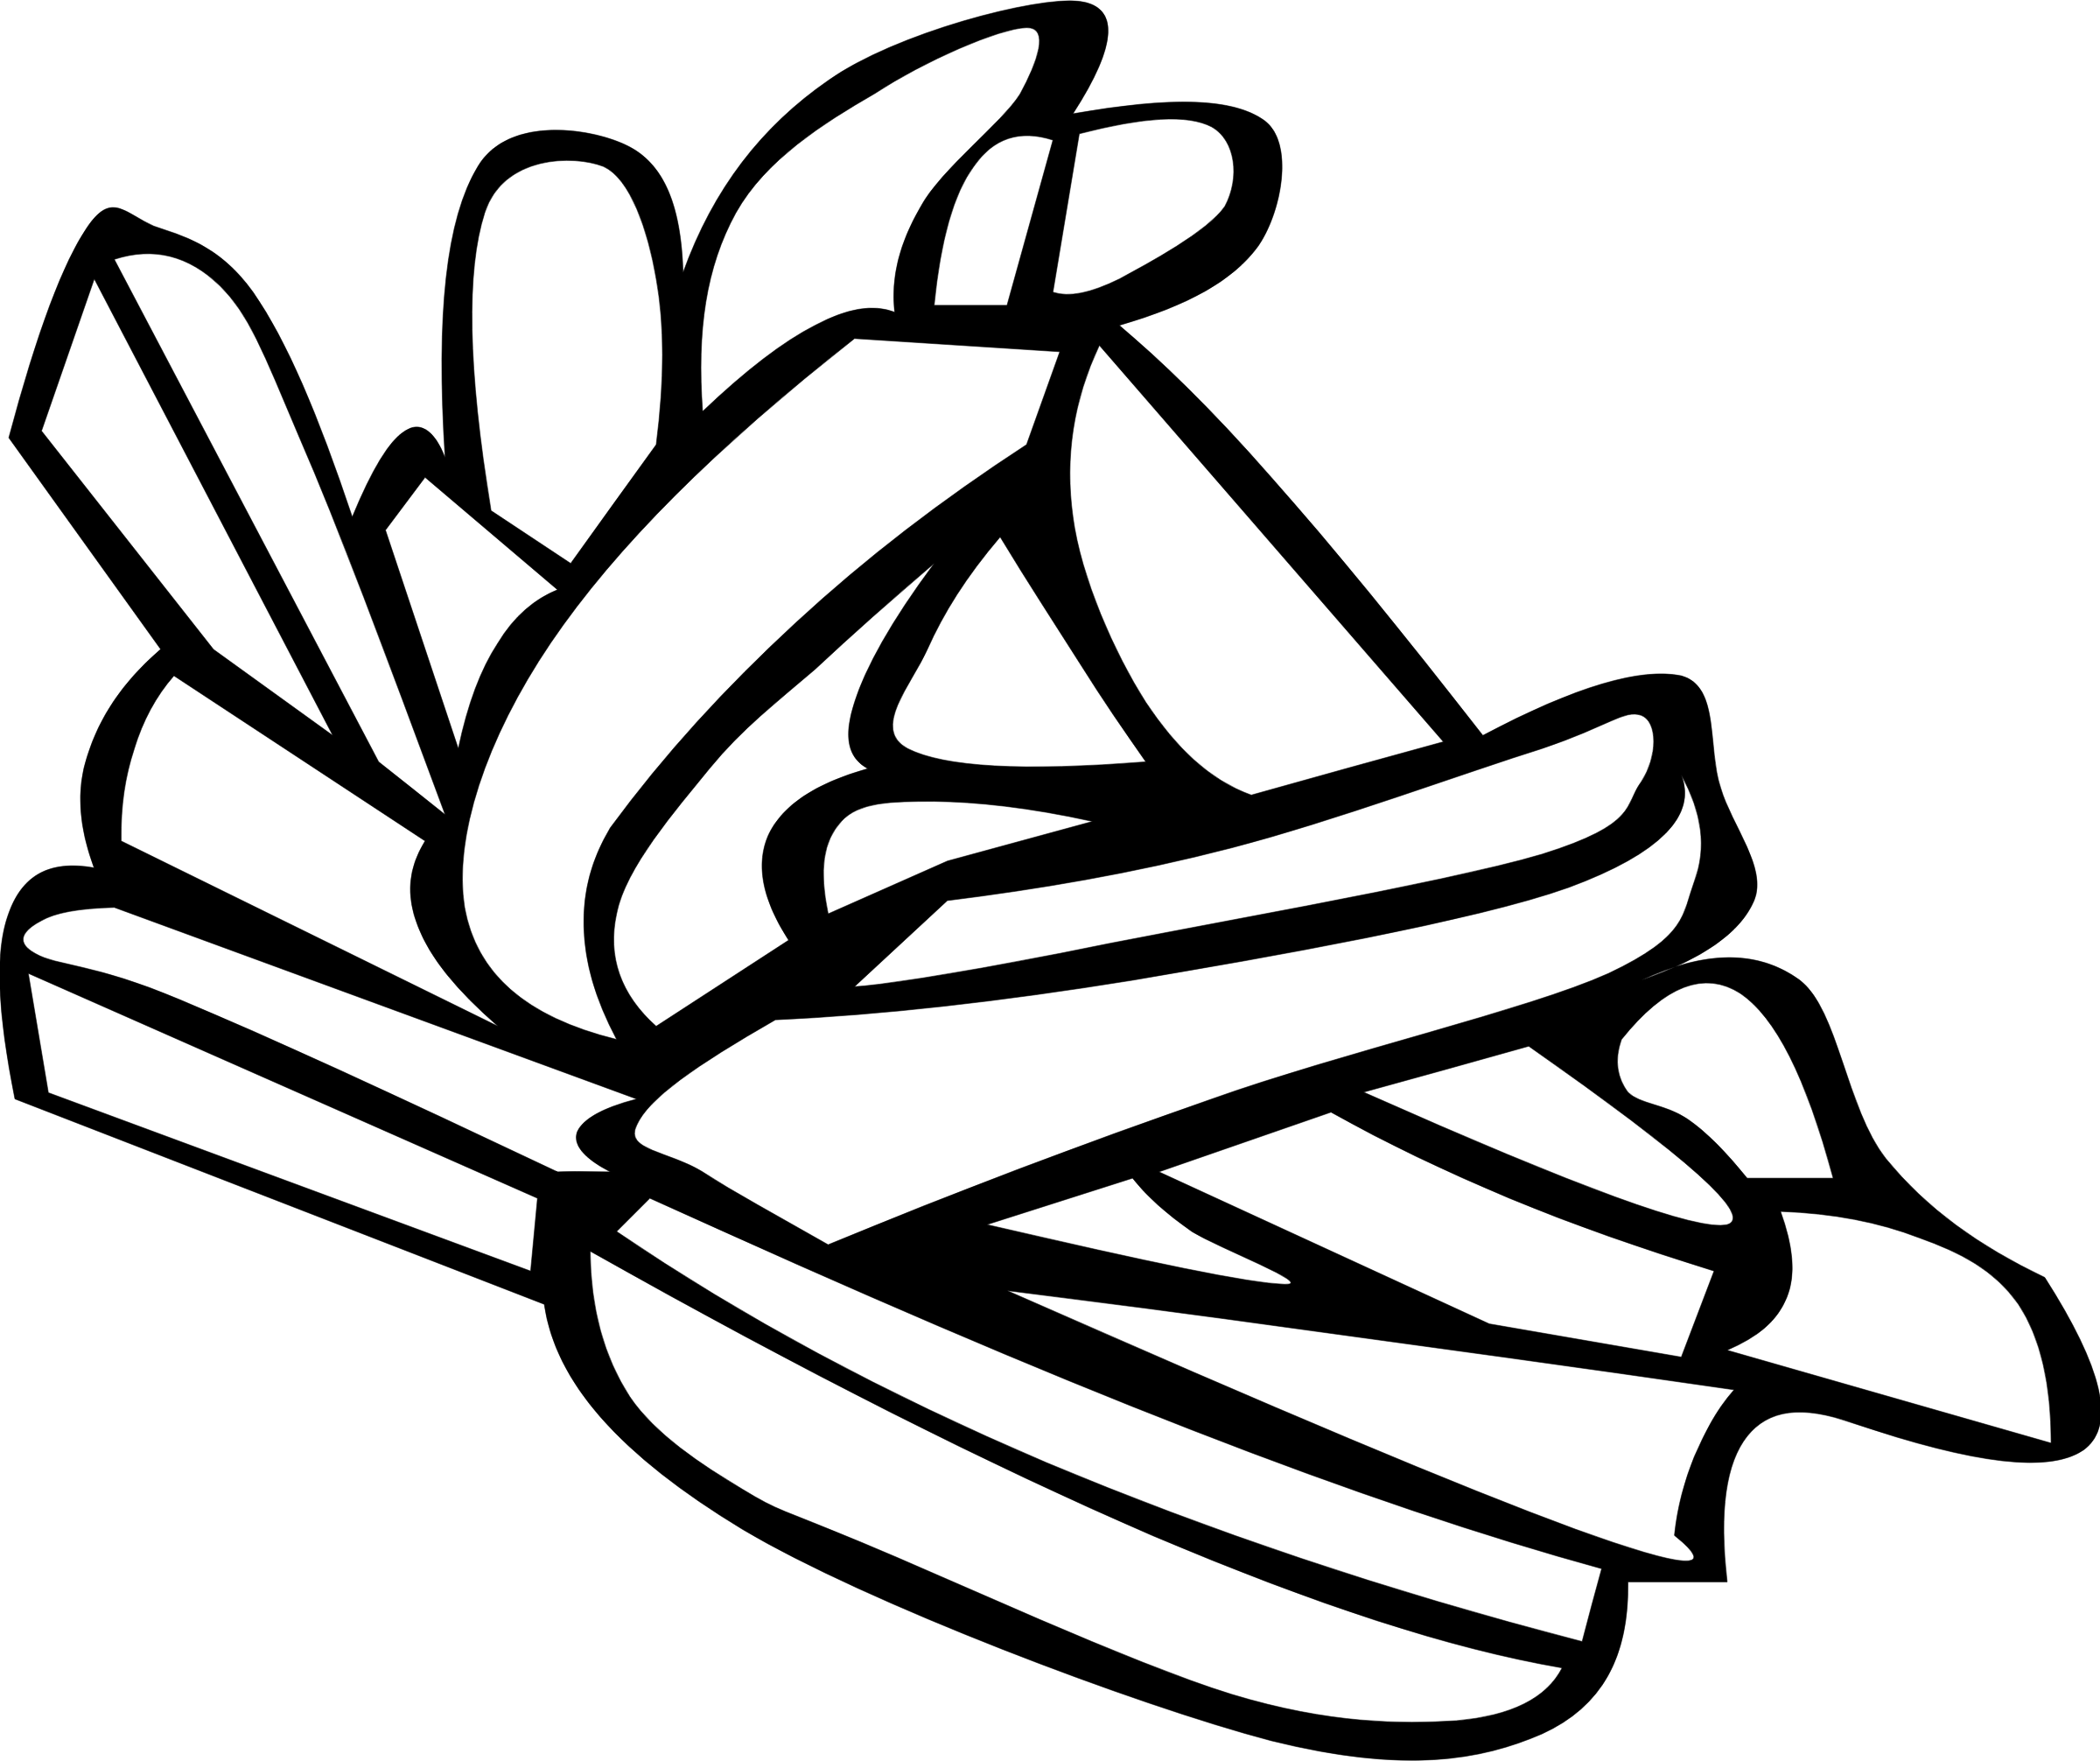 Fast food lunch dinner. Fries clipart black and white